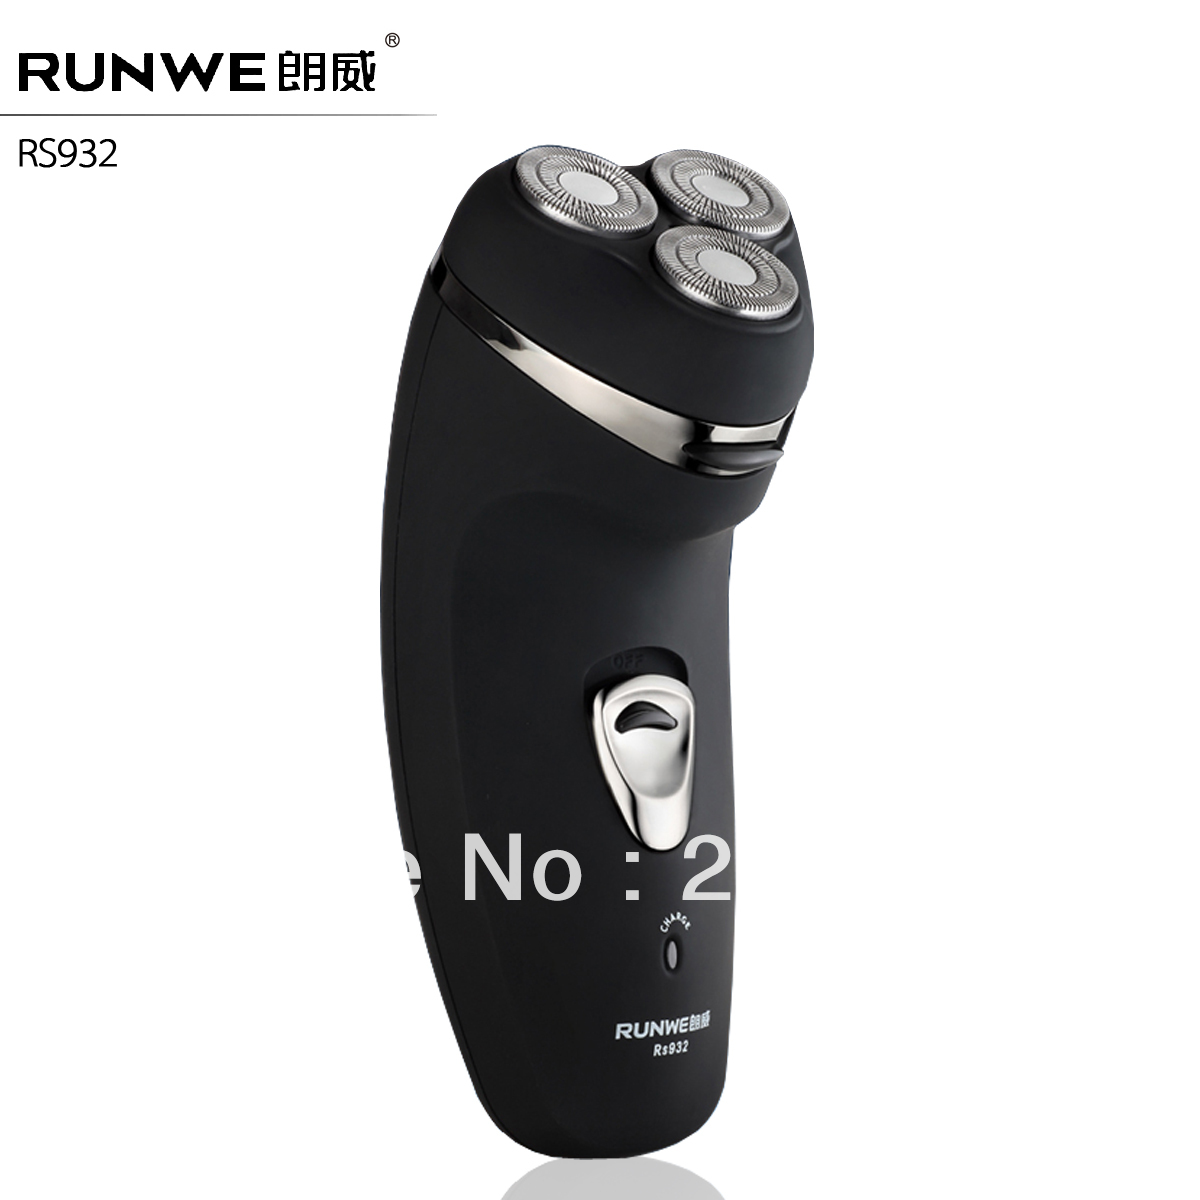 Runwe top quality rotary shaver electric shaver razor Father's Day gift fast delivery for men free shipping(China (Mainland))